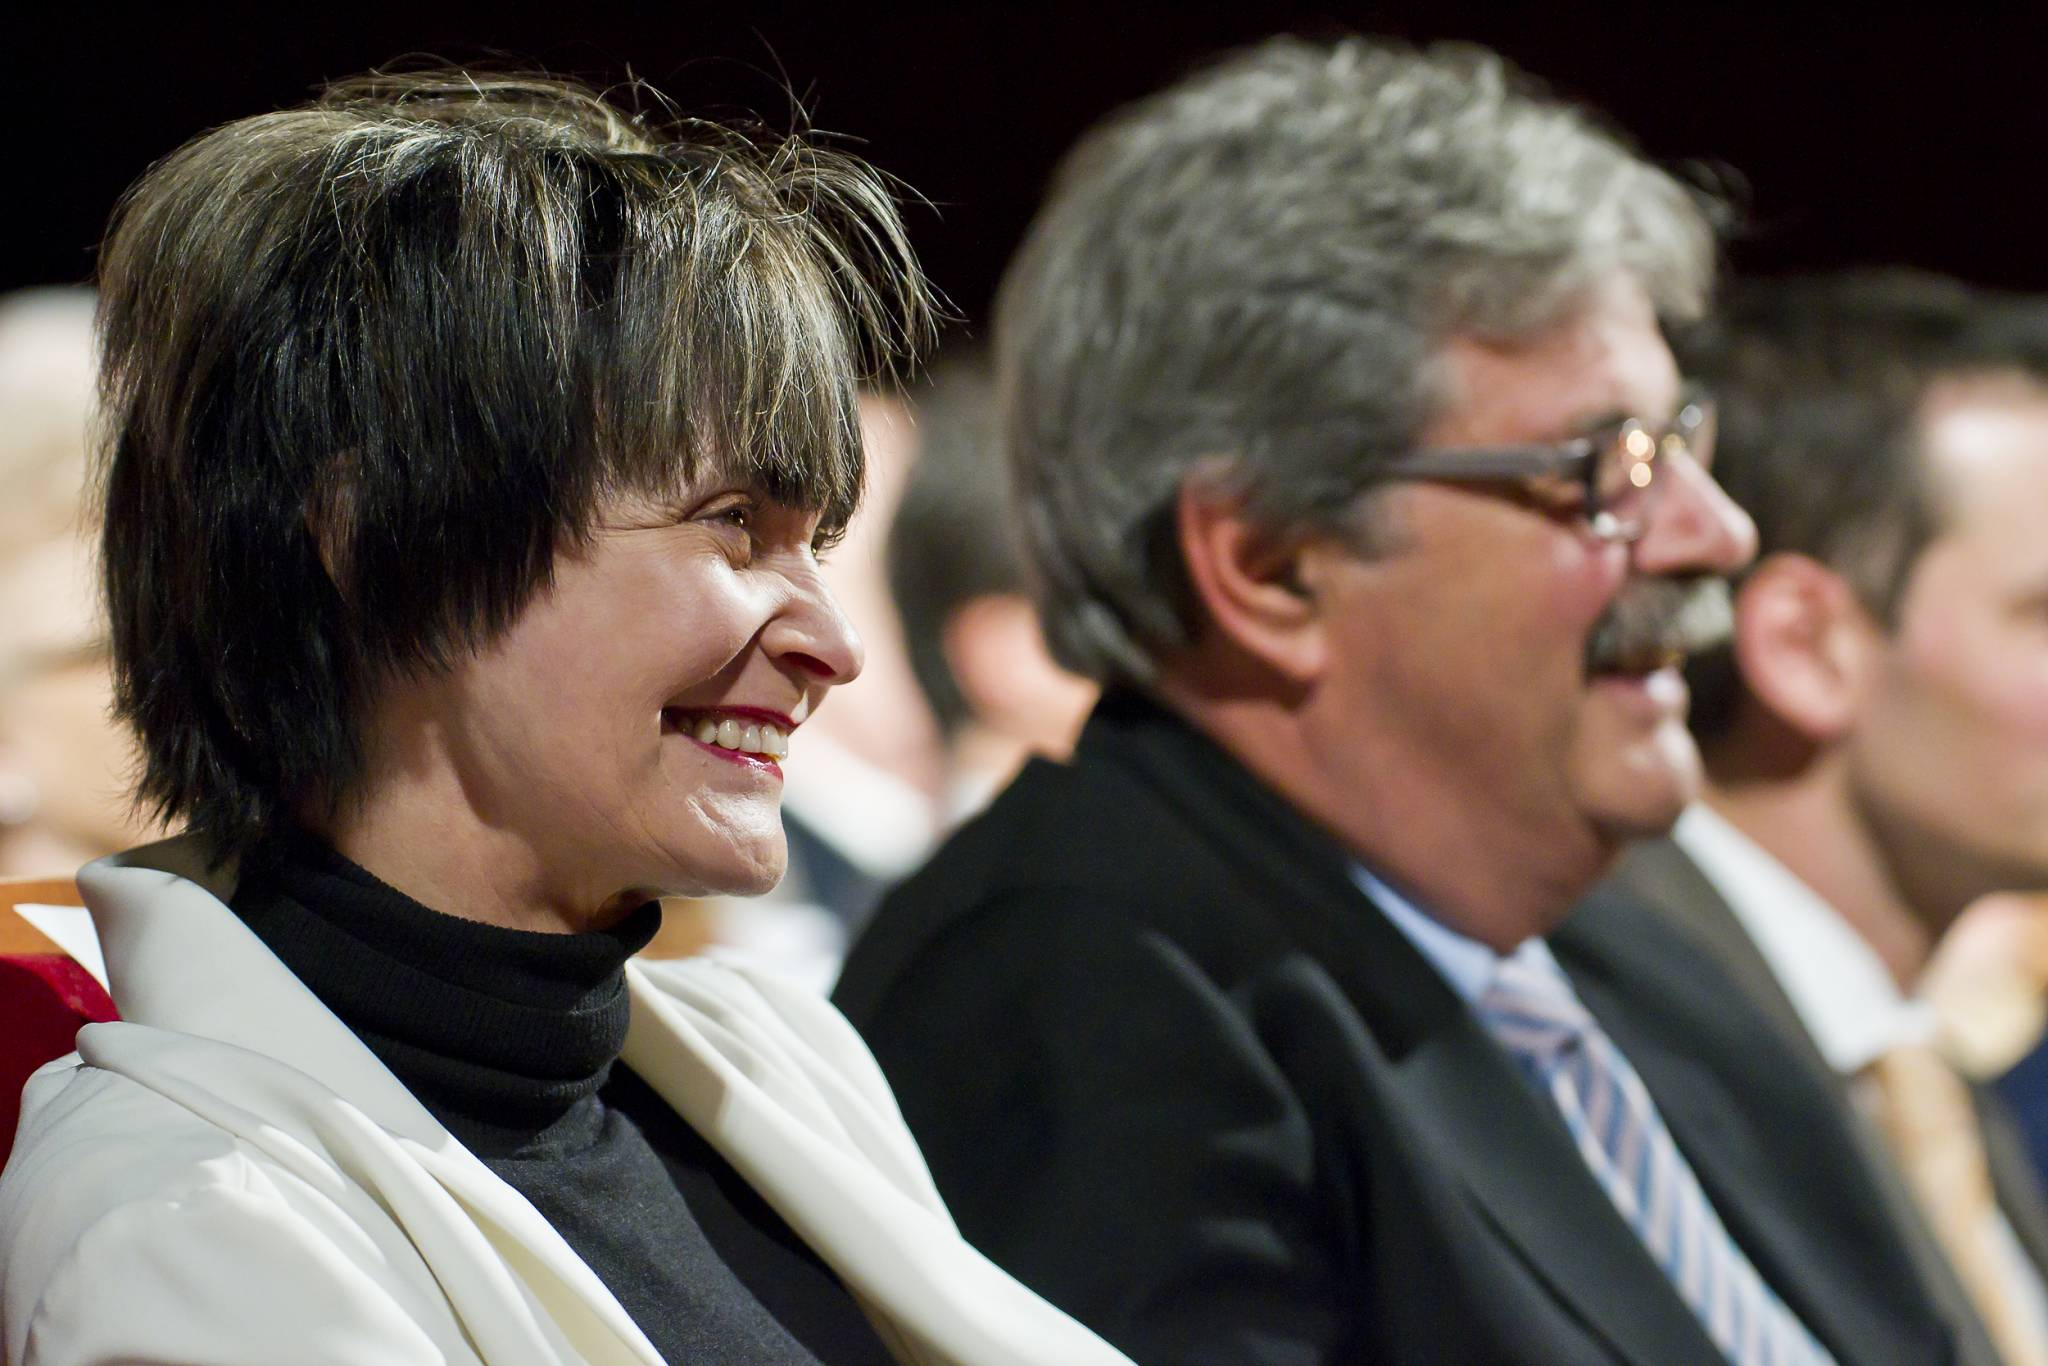 Micheline Calmy Rey, President of the Swiss Confederation, and Pierre-François Unger, Geneva State councillor, November 19th, 2011